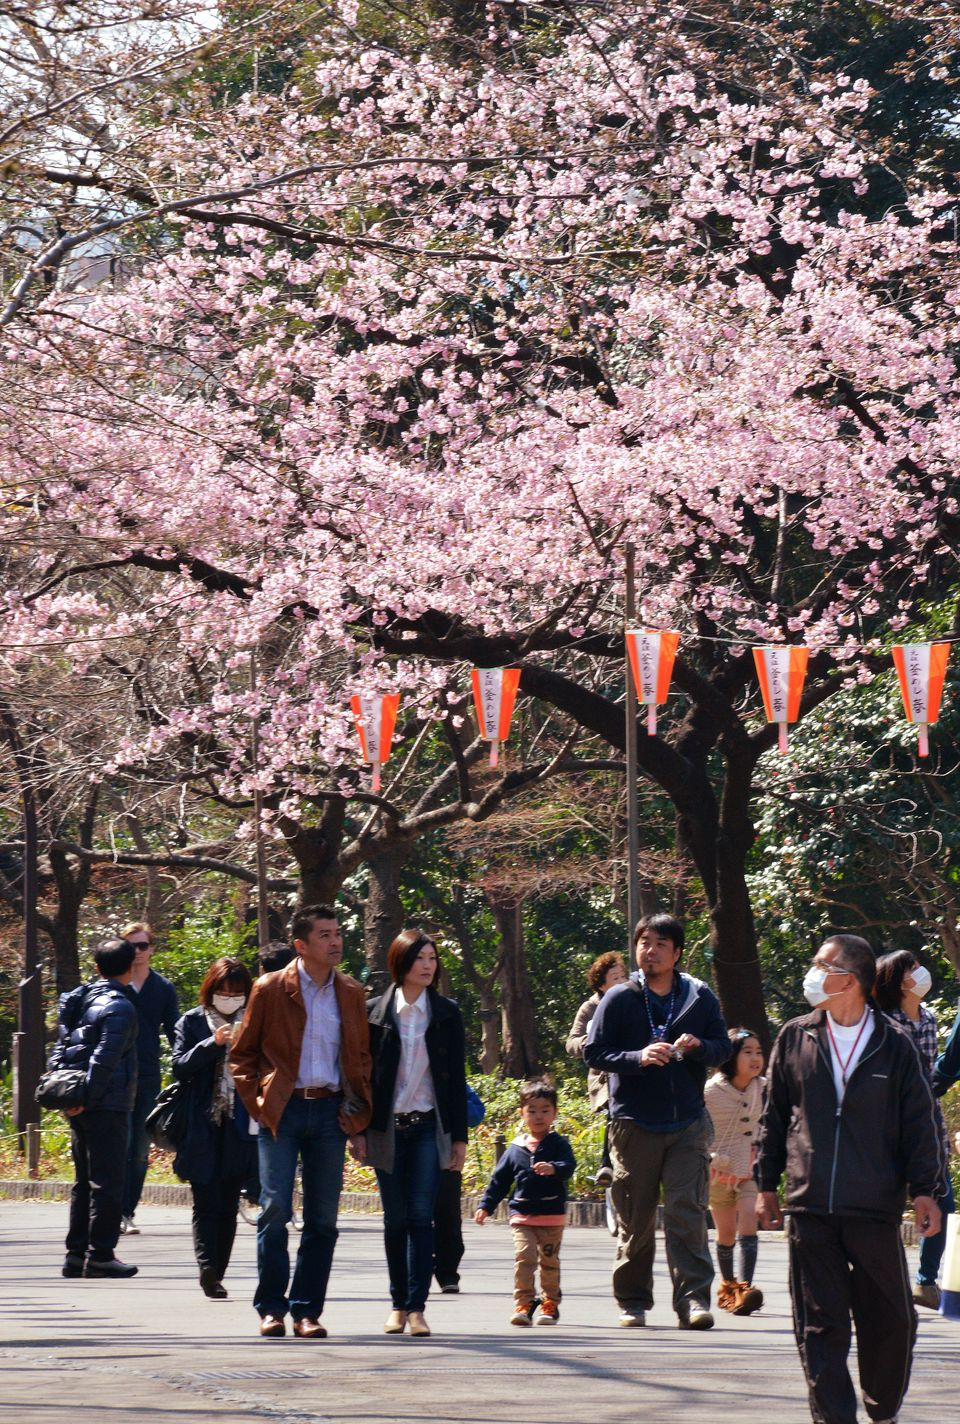 People walk under cherry blossom trees at a park in Tokyo on March 17, 2013. Japan's weather agency announced the official be